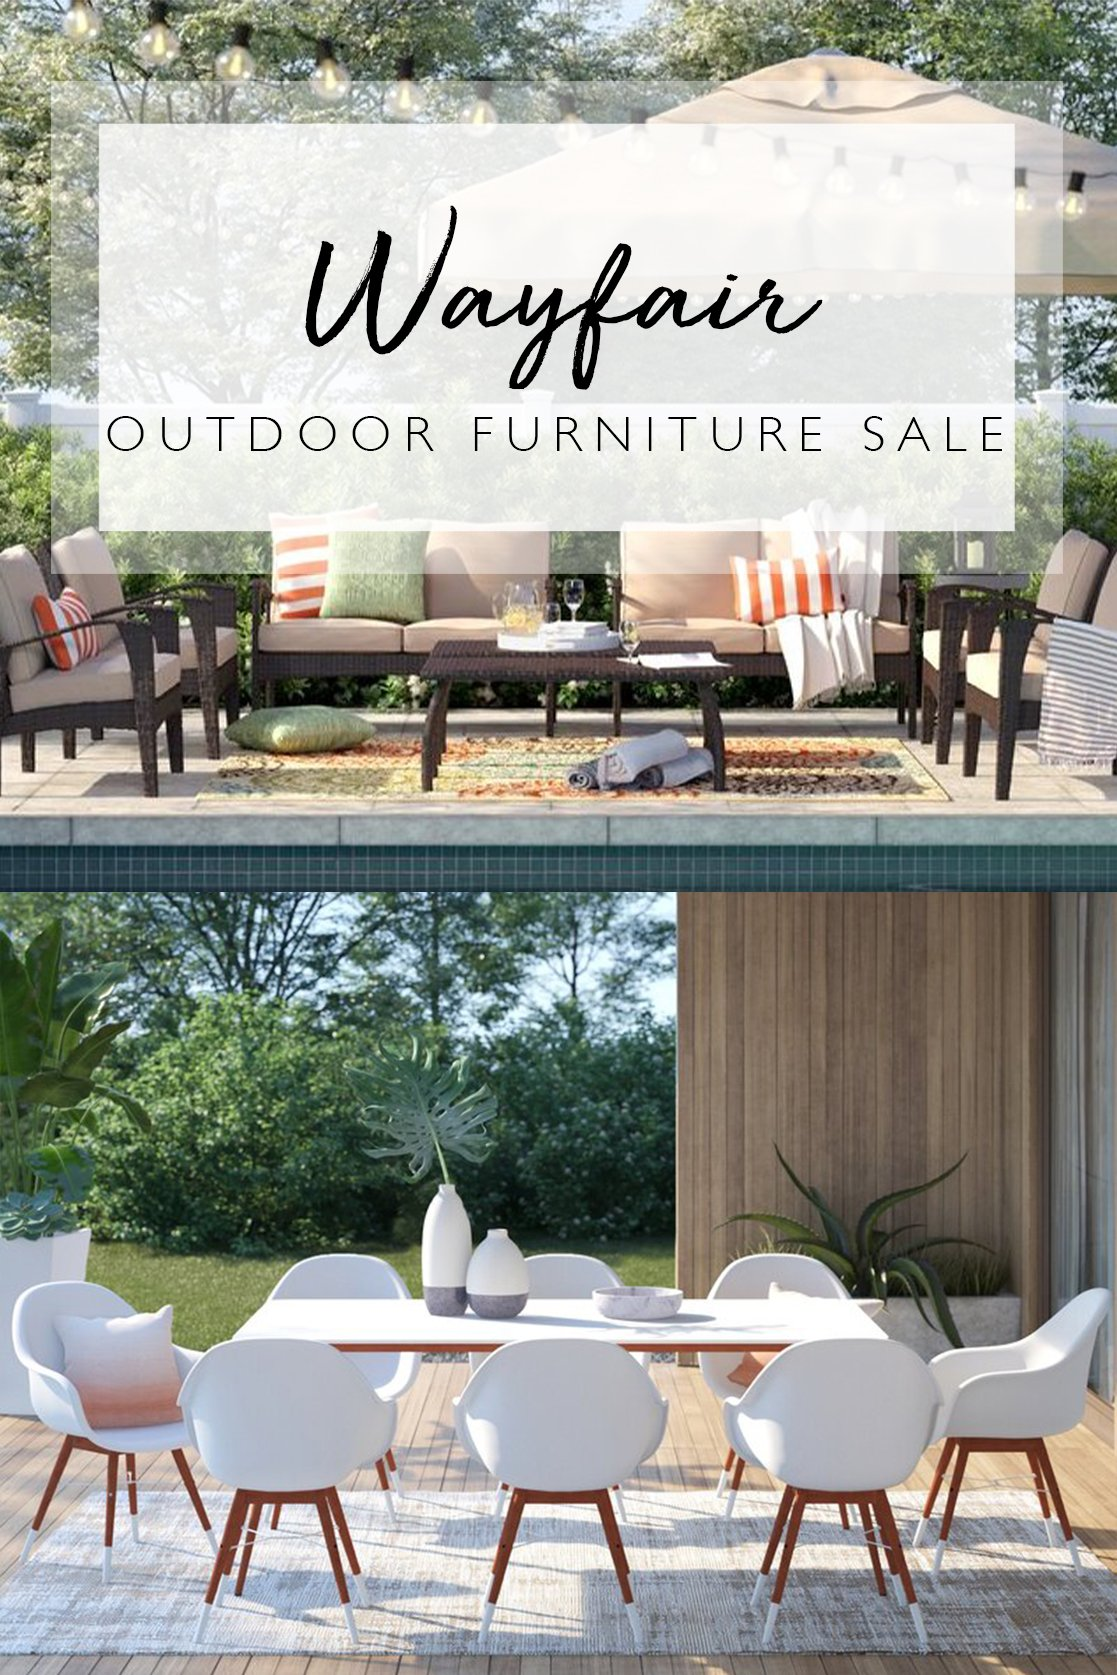 Wayfair outdoor furniture sale picks, by lifestyle blogger What The Fab